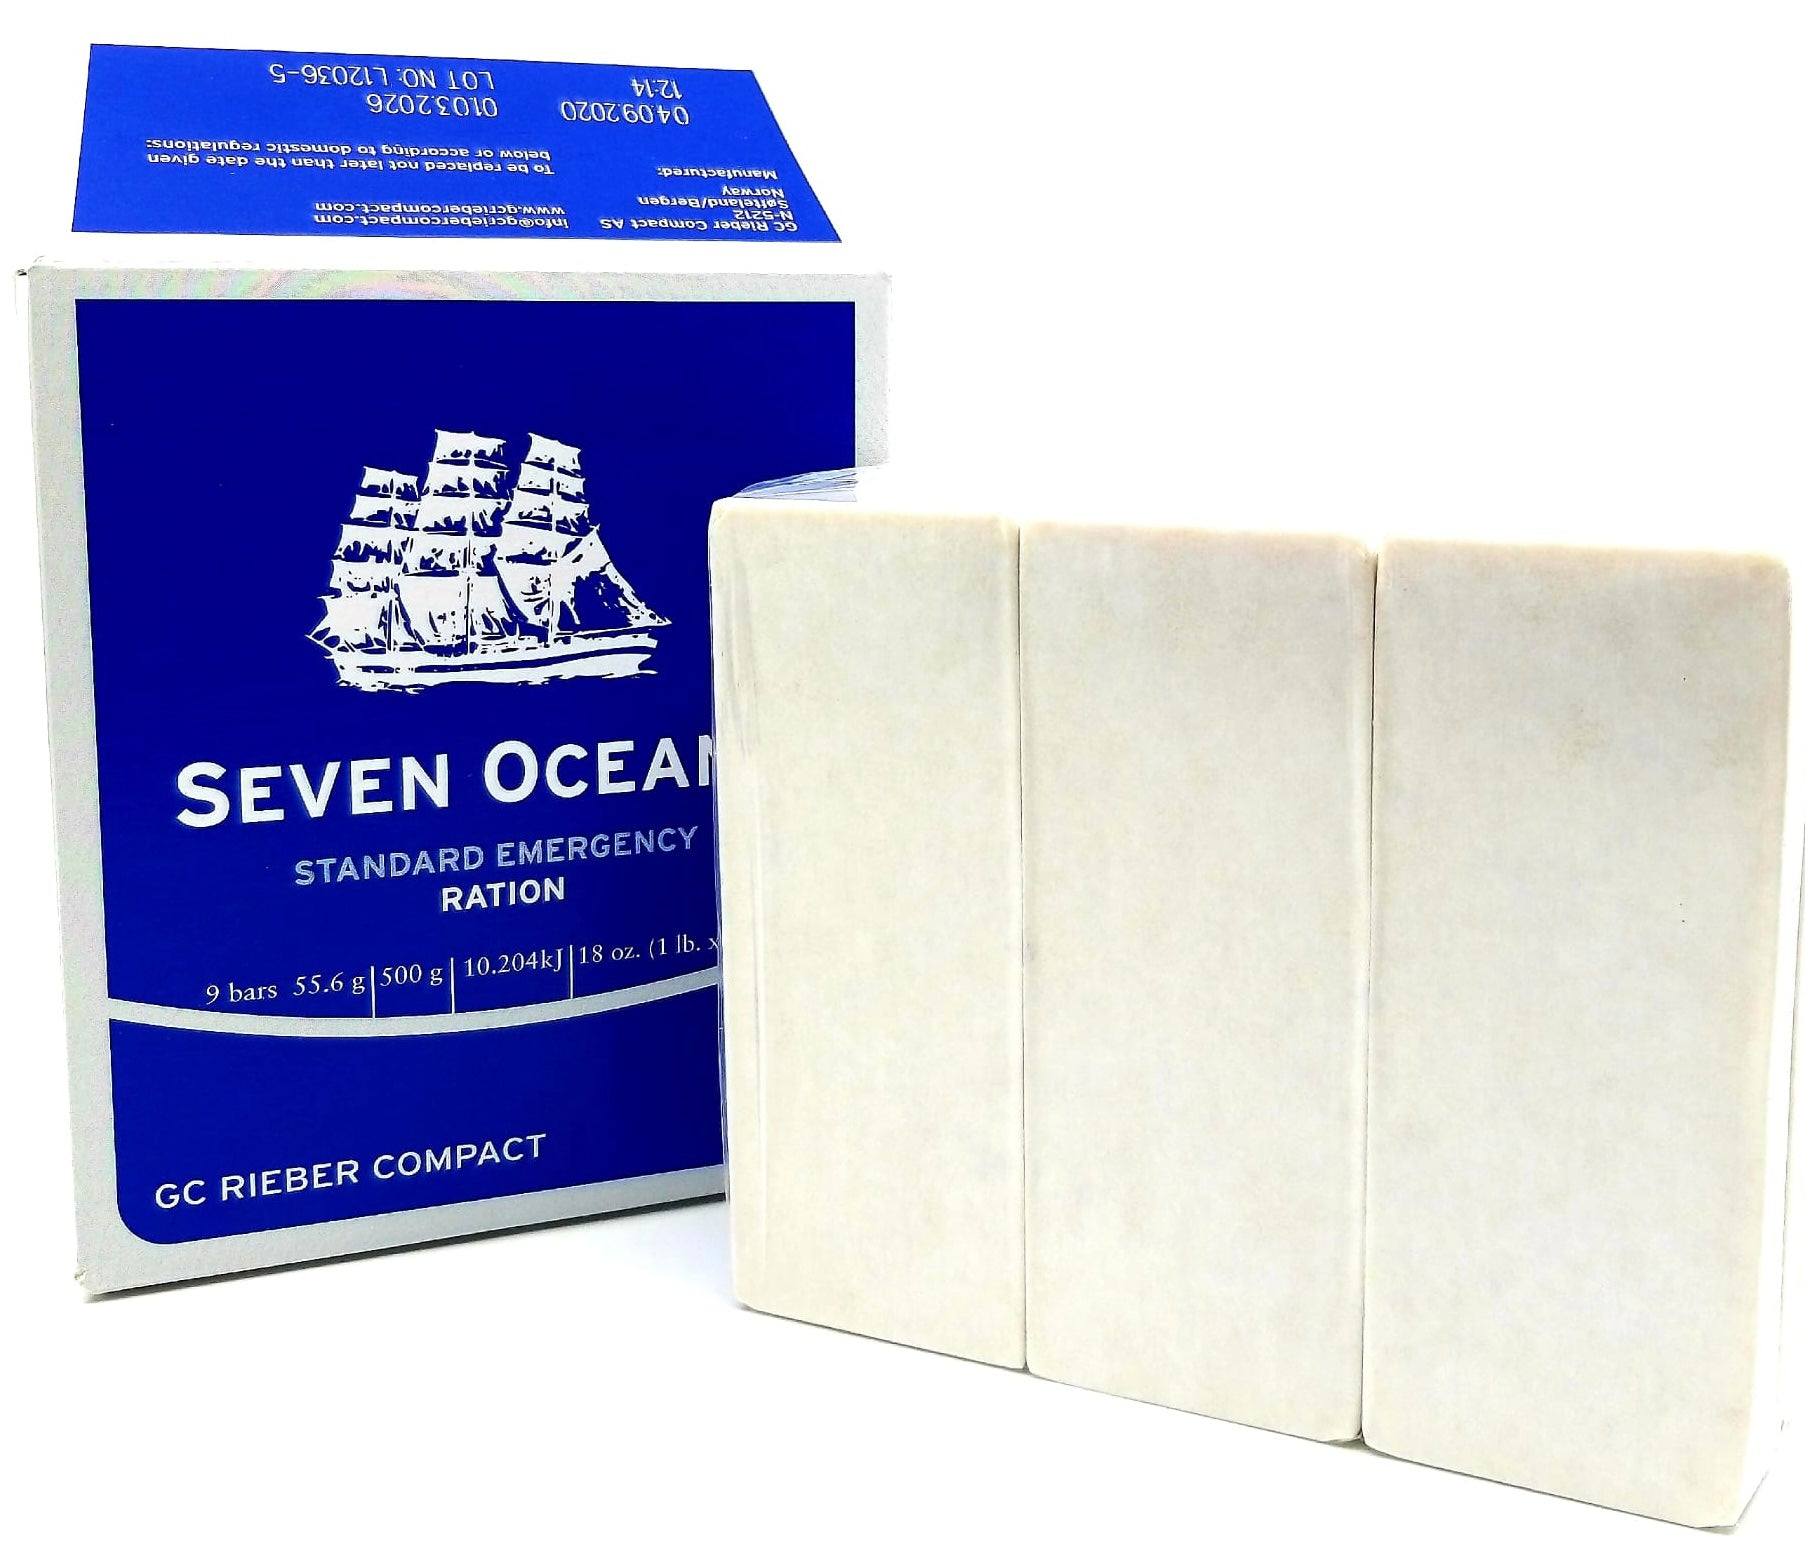 Seven oceans (norway biscuits)